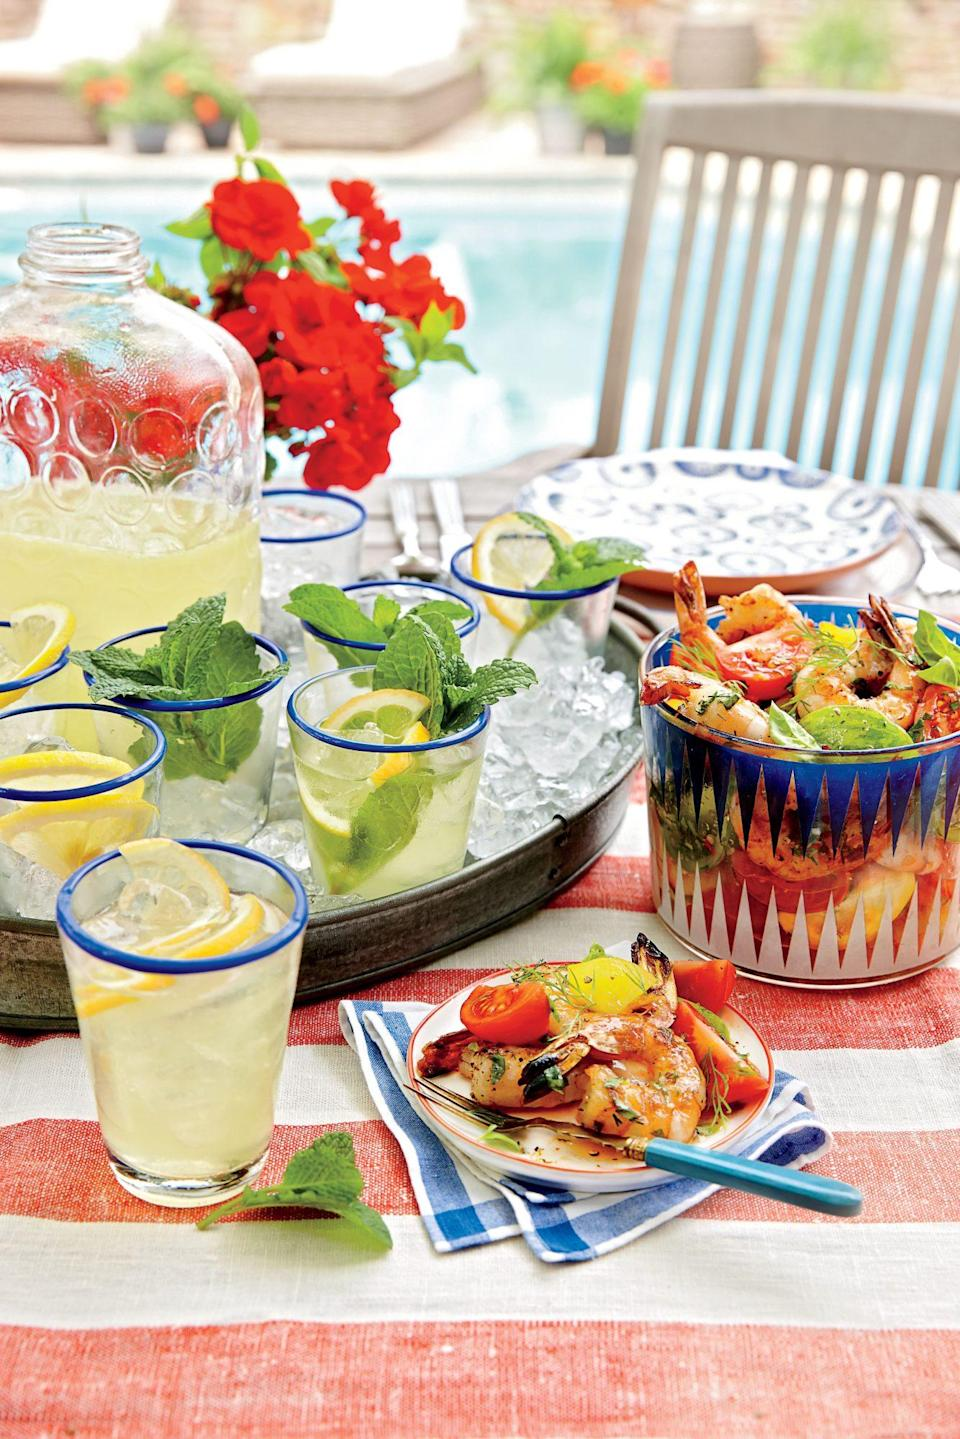 """<p><strong>Recipe: <a href=""""https://www.southernliving.com/syndication/lemon-mint-sparklers"""" rel=""""nofollow noopener"""" target=""""_blank"""" data-ylk=""""slk:Lemon-Mint Sparklers"""" class=""""link rapid-noclick-resp"""">Lemon-Mint Sparklers</a></strong></p> <p>Lemon and mint are a match made in heaven—er, the produce section. This drink is simple and calls for no booze at all, if you prefer. However, vodka or a crisp white wine make awesome additions for a spritz. </p>"""